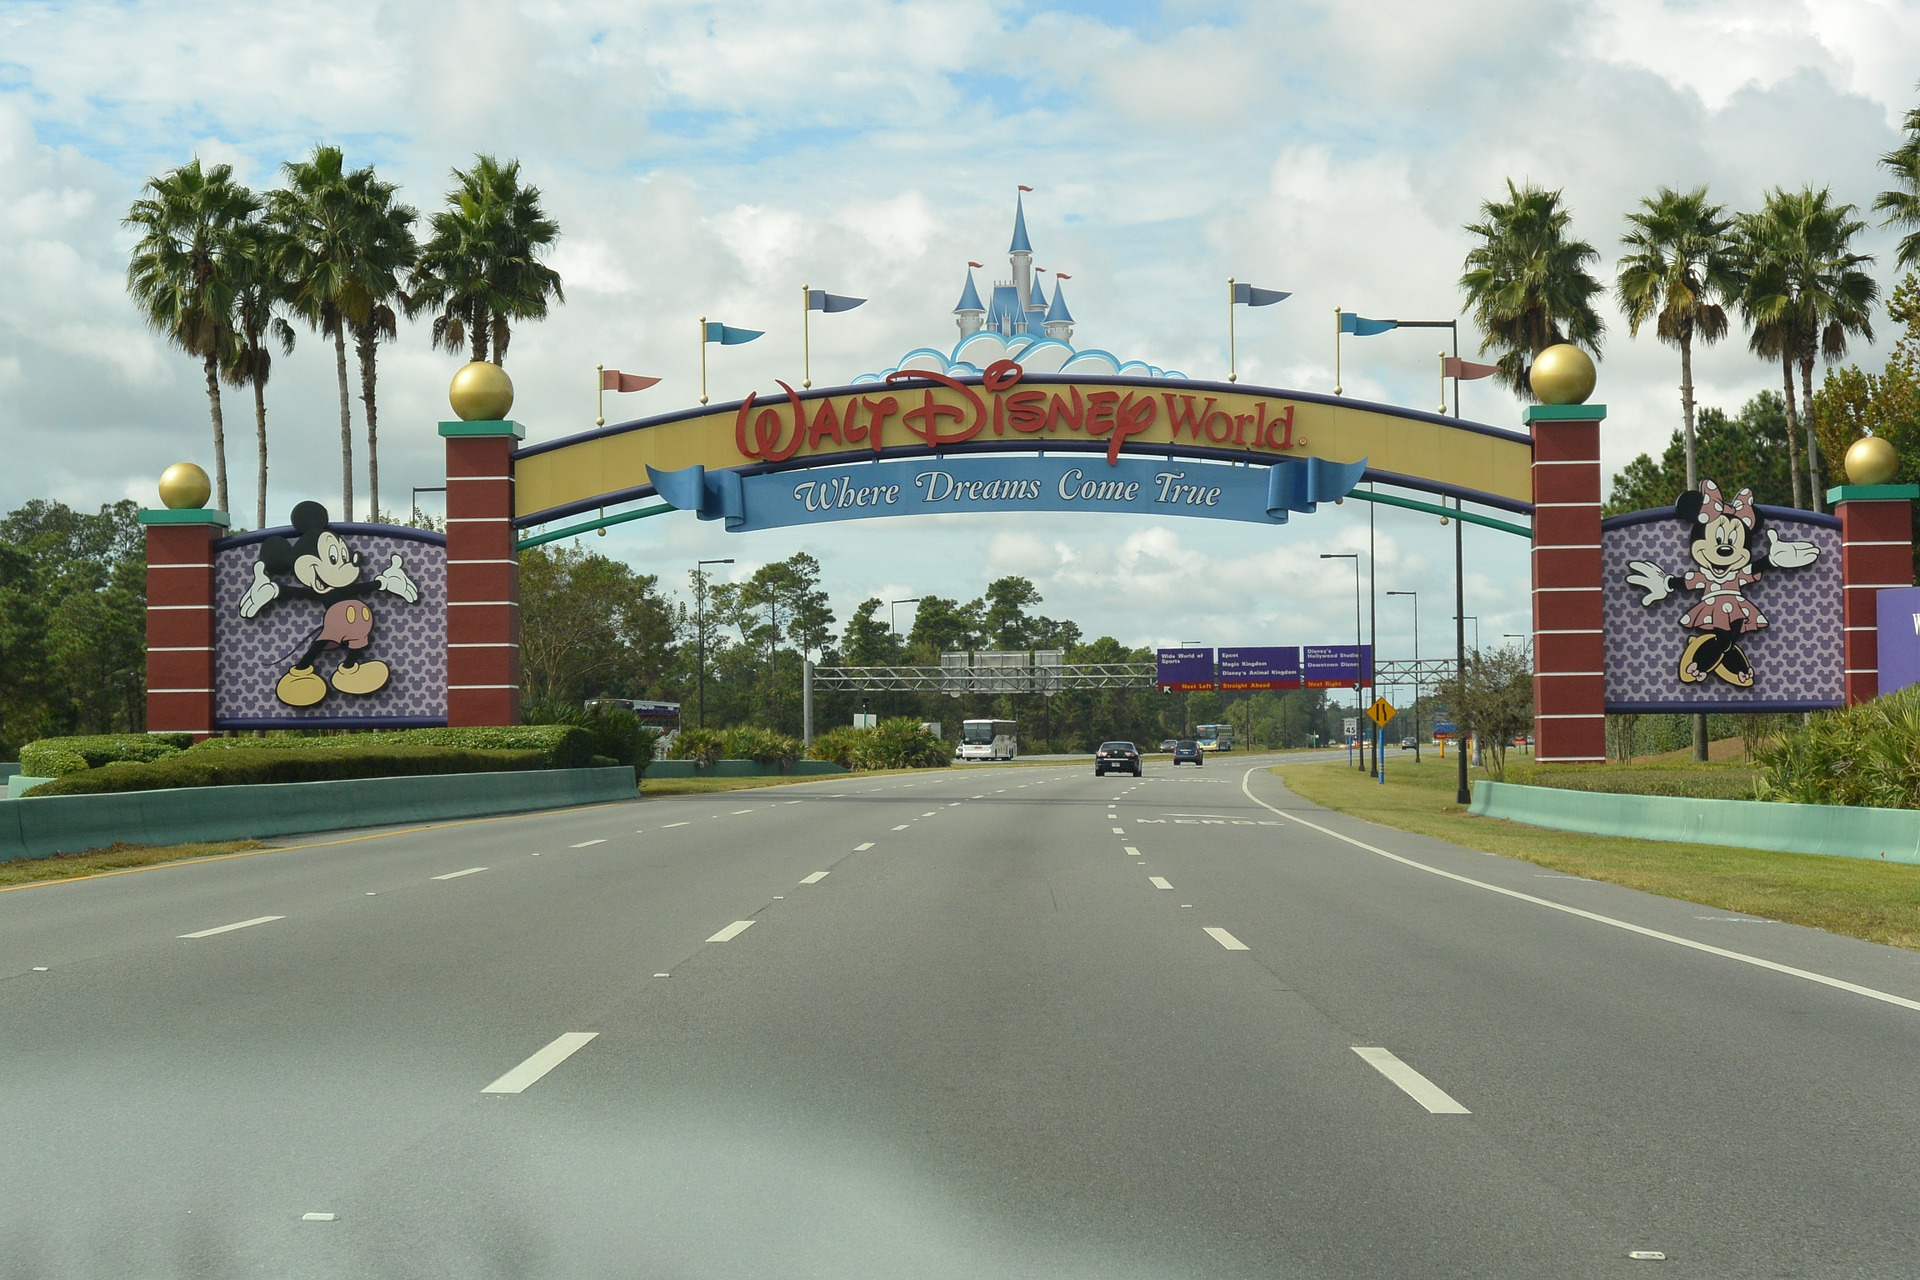 Disneyland and Disney World are two of the most magical places on earth! Find out how both compare and what makes each park unique.